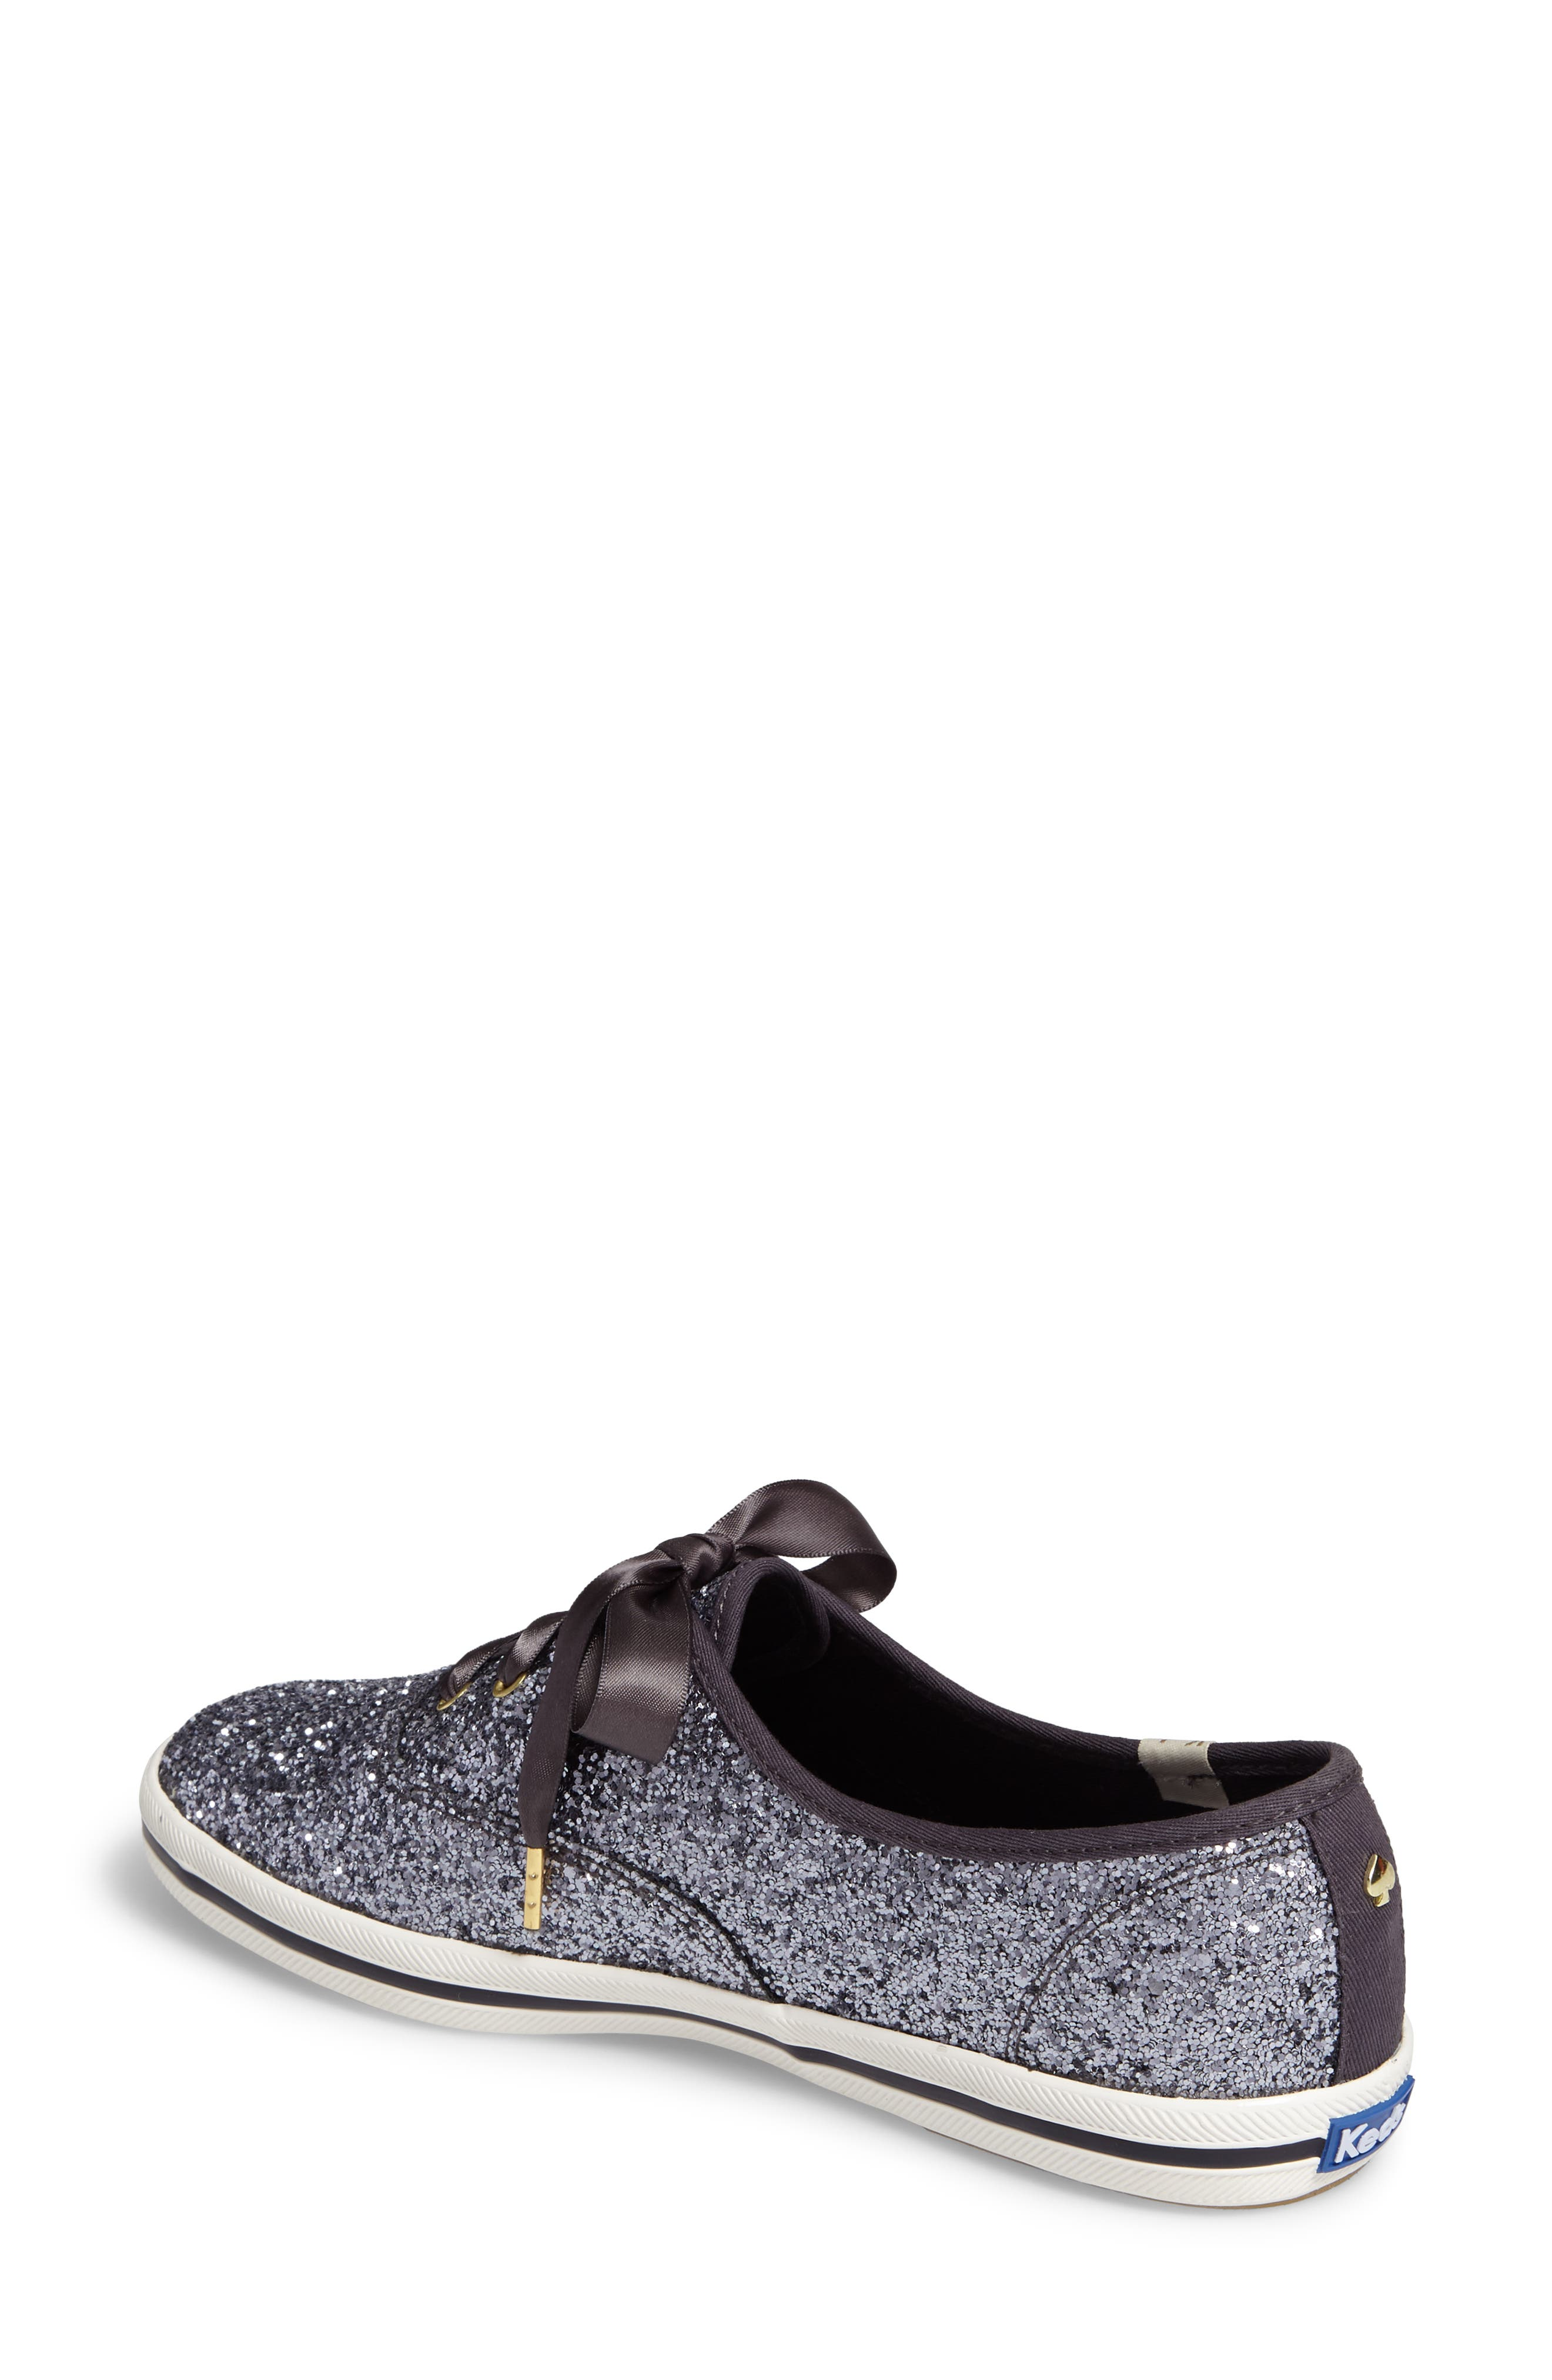 KEDS<SUP>®</SUP> FOR KATE SPADE NEW YORK, glitter sneaker, Alternate thumbnail 2, color, PEWTER